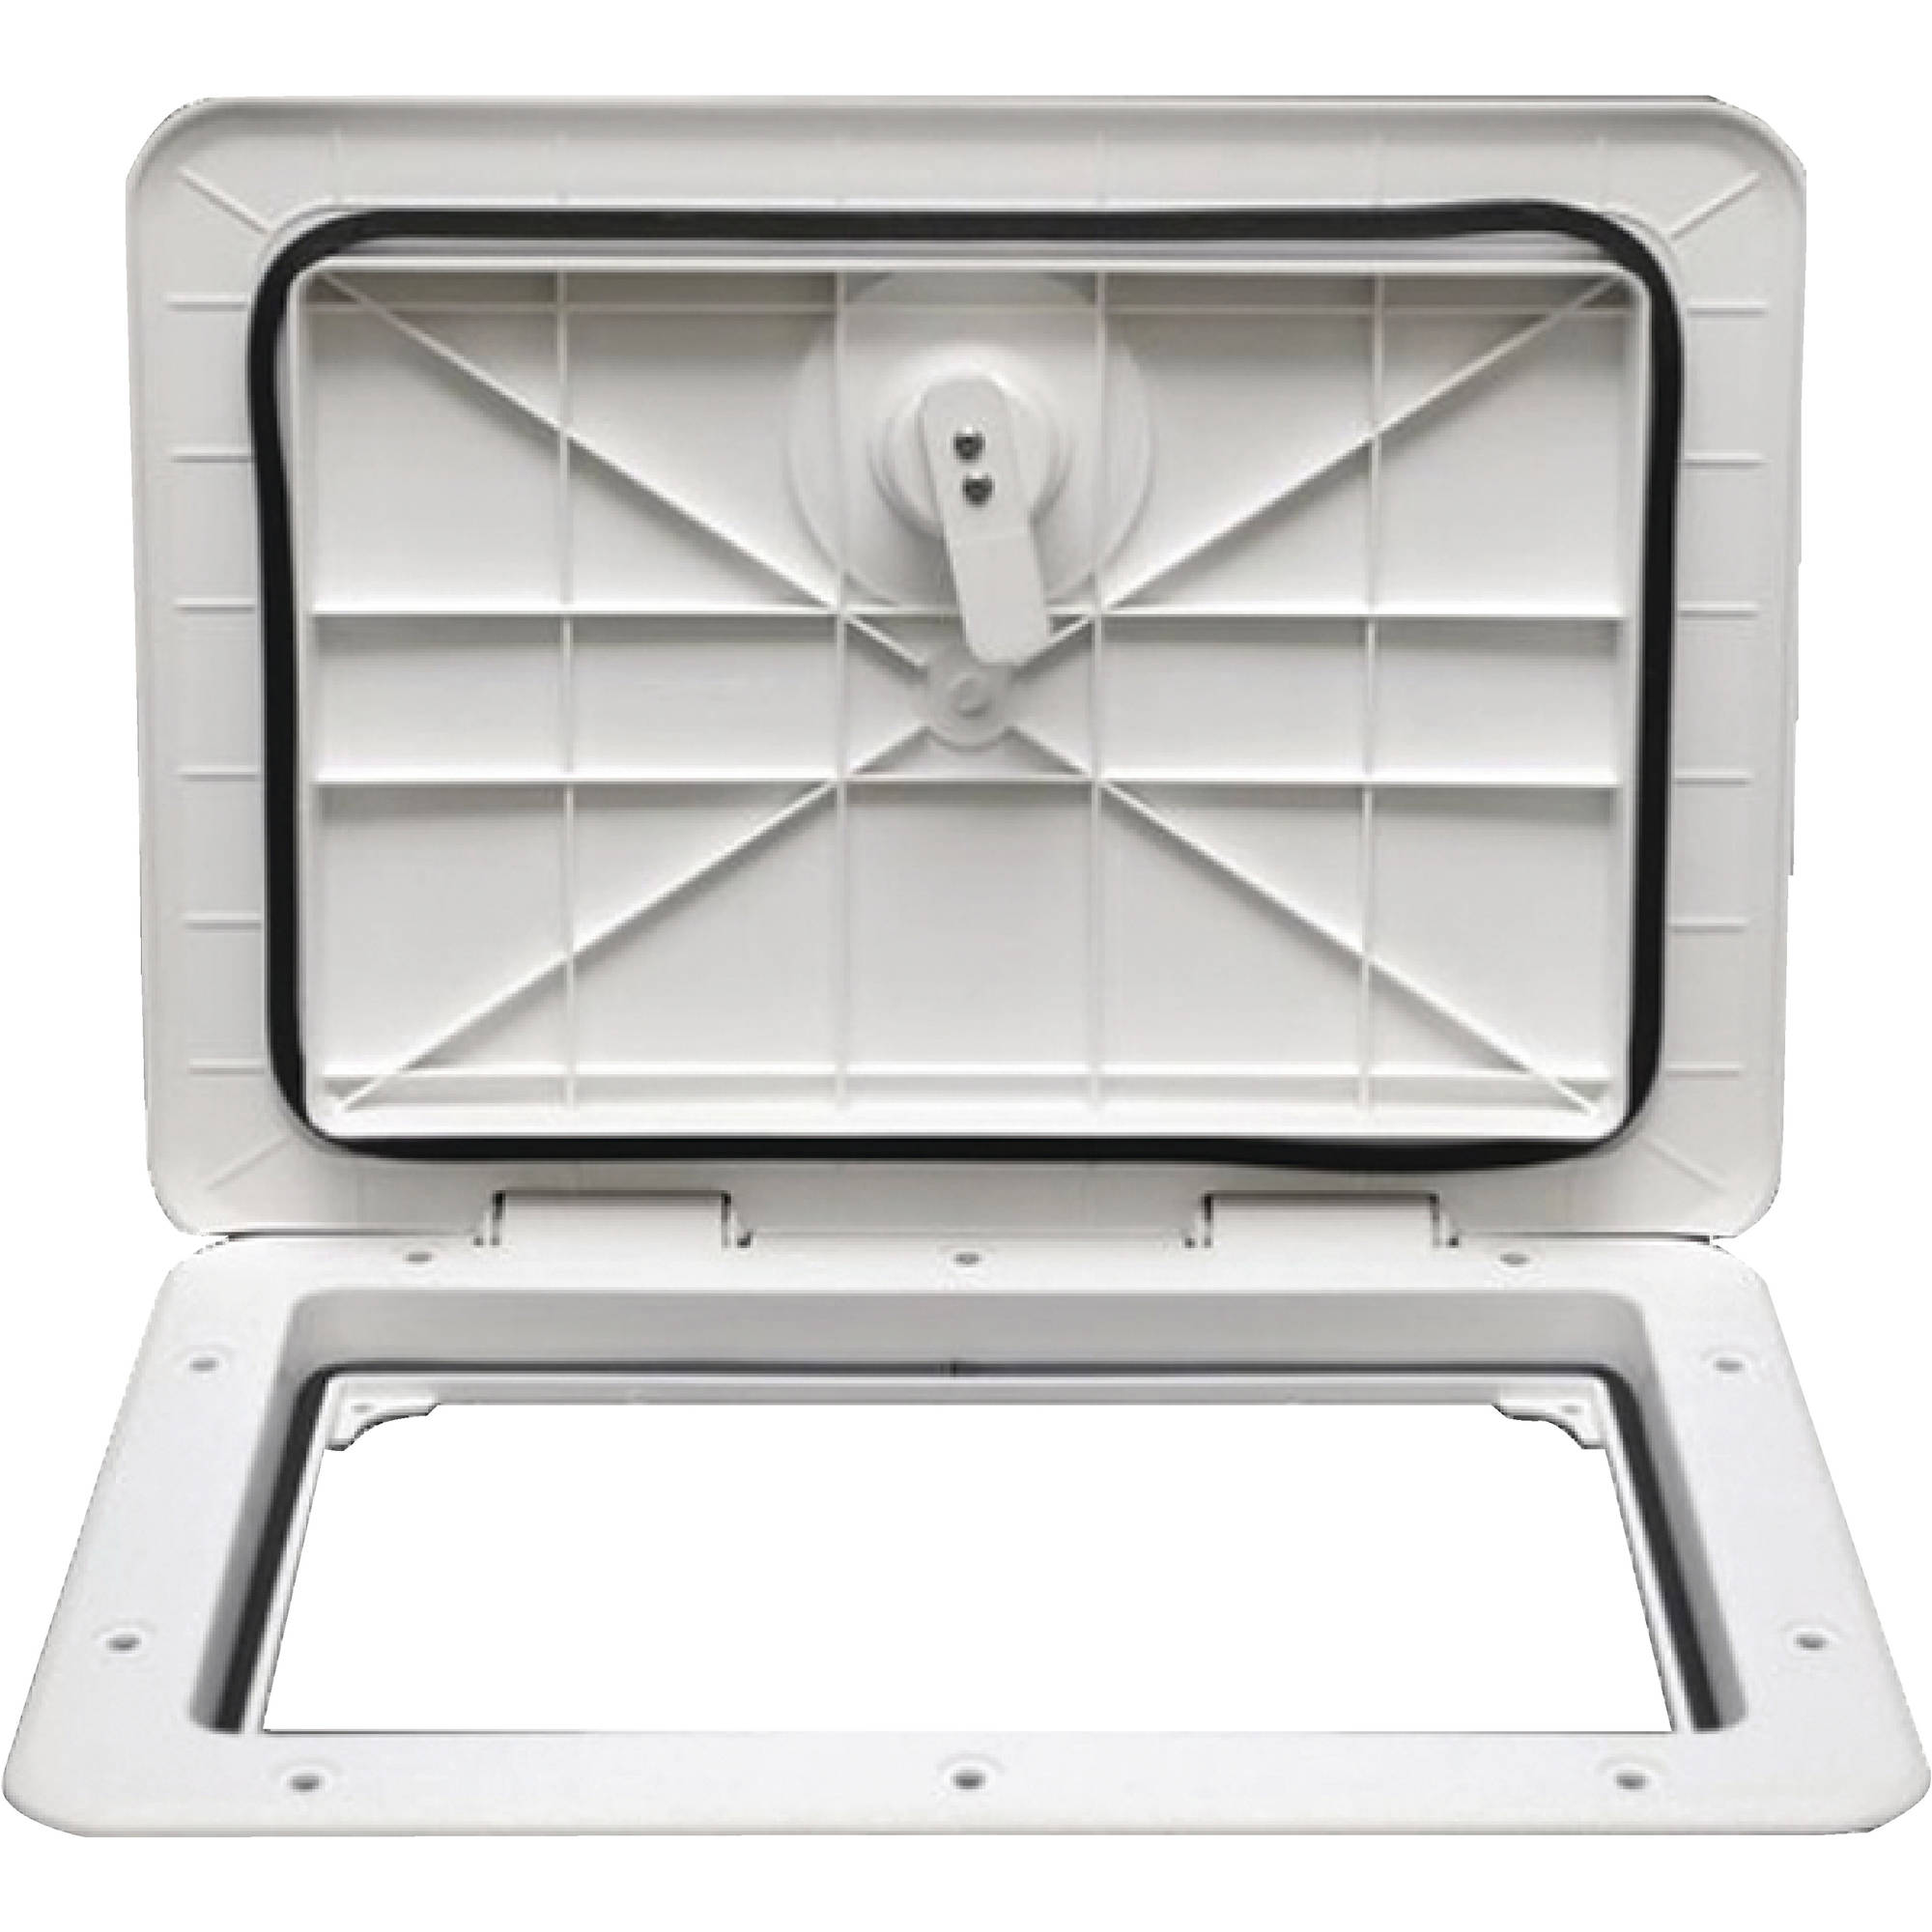 "Click here to buy T-H Marine Sure-Seal Non-Locking Access Hatch, 13-1 4"" x 30-3 4"" by T-H Marine Supplies."